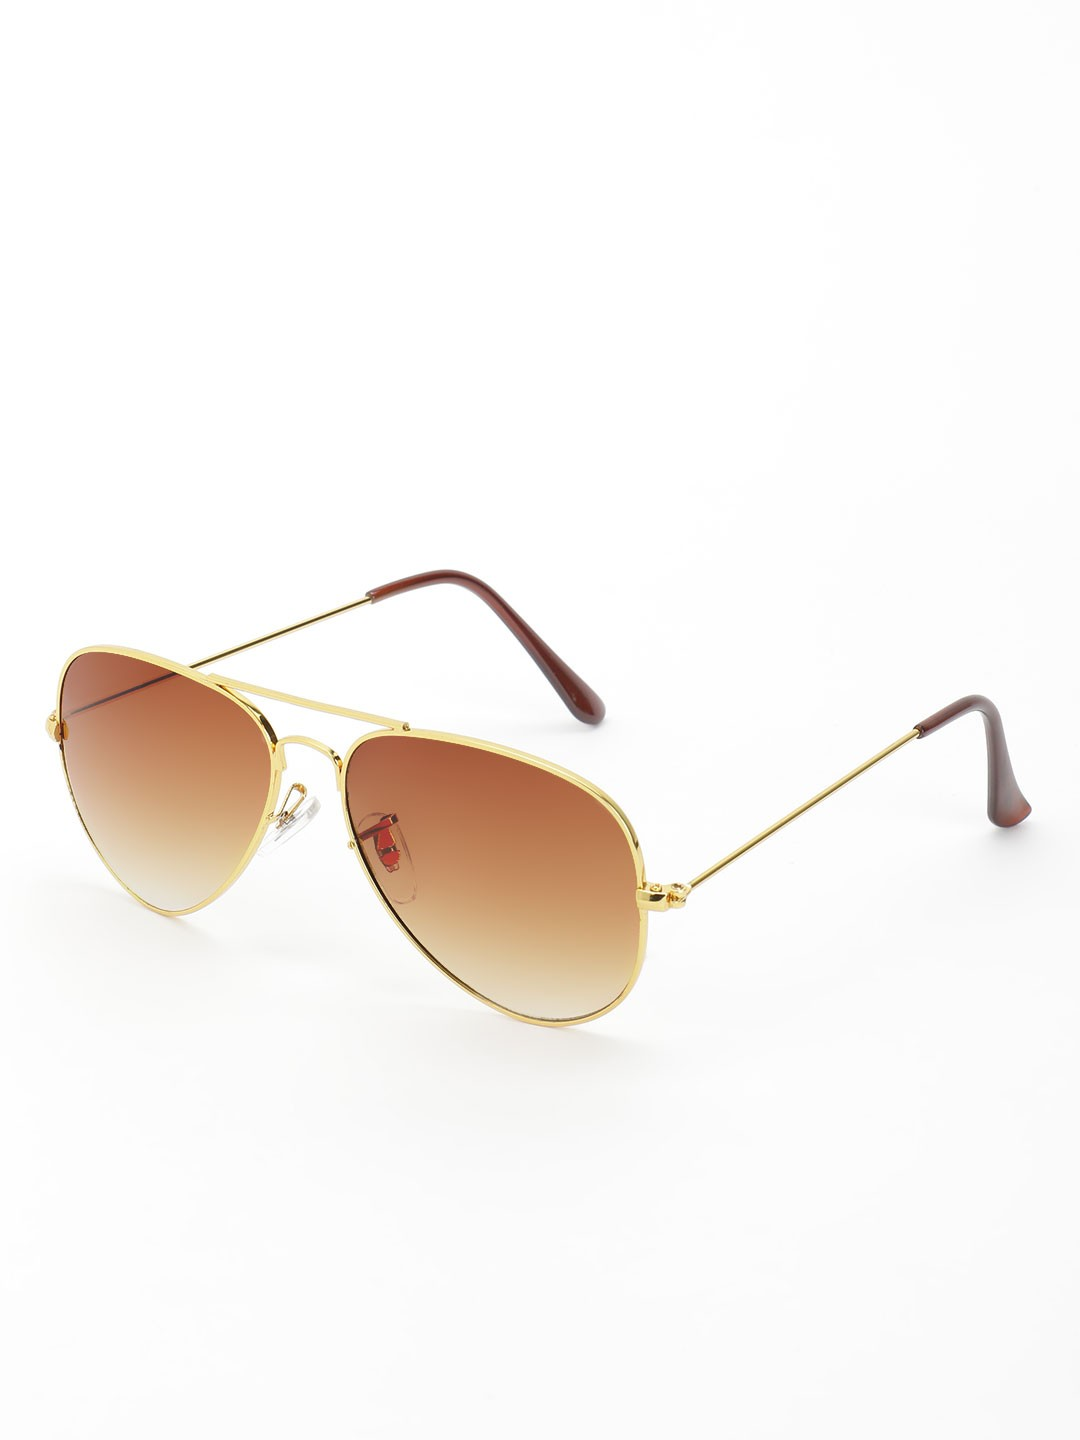 KOOVS Red Pilot Sunglasses 1